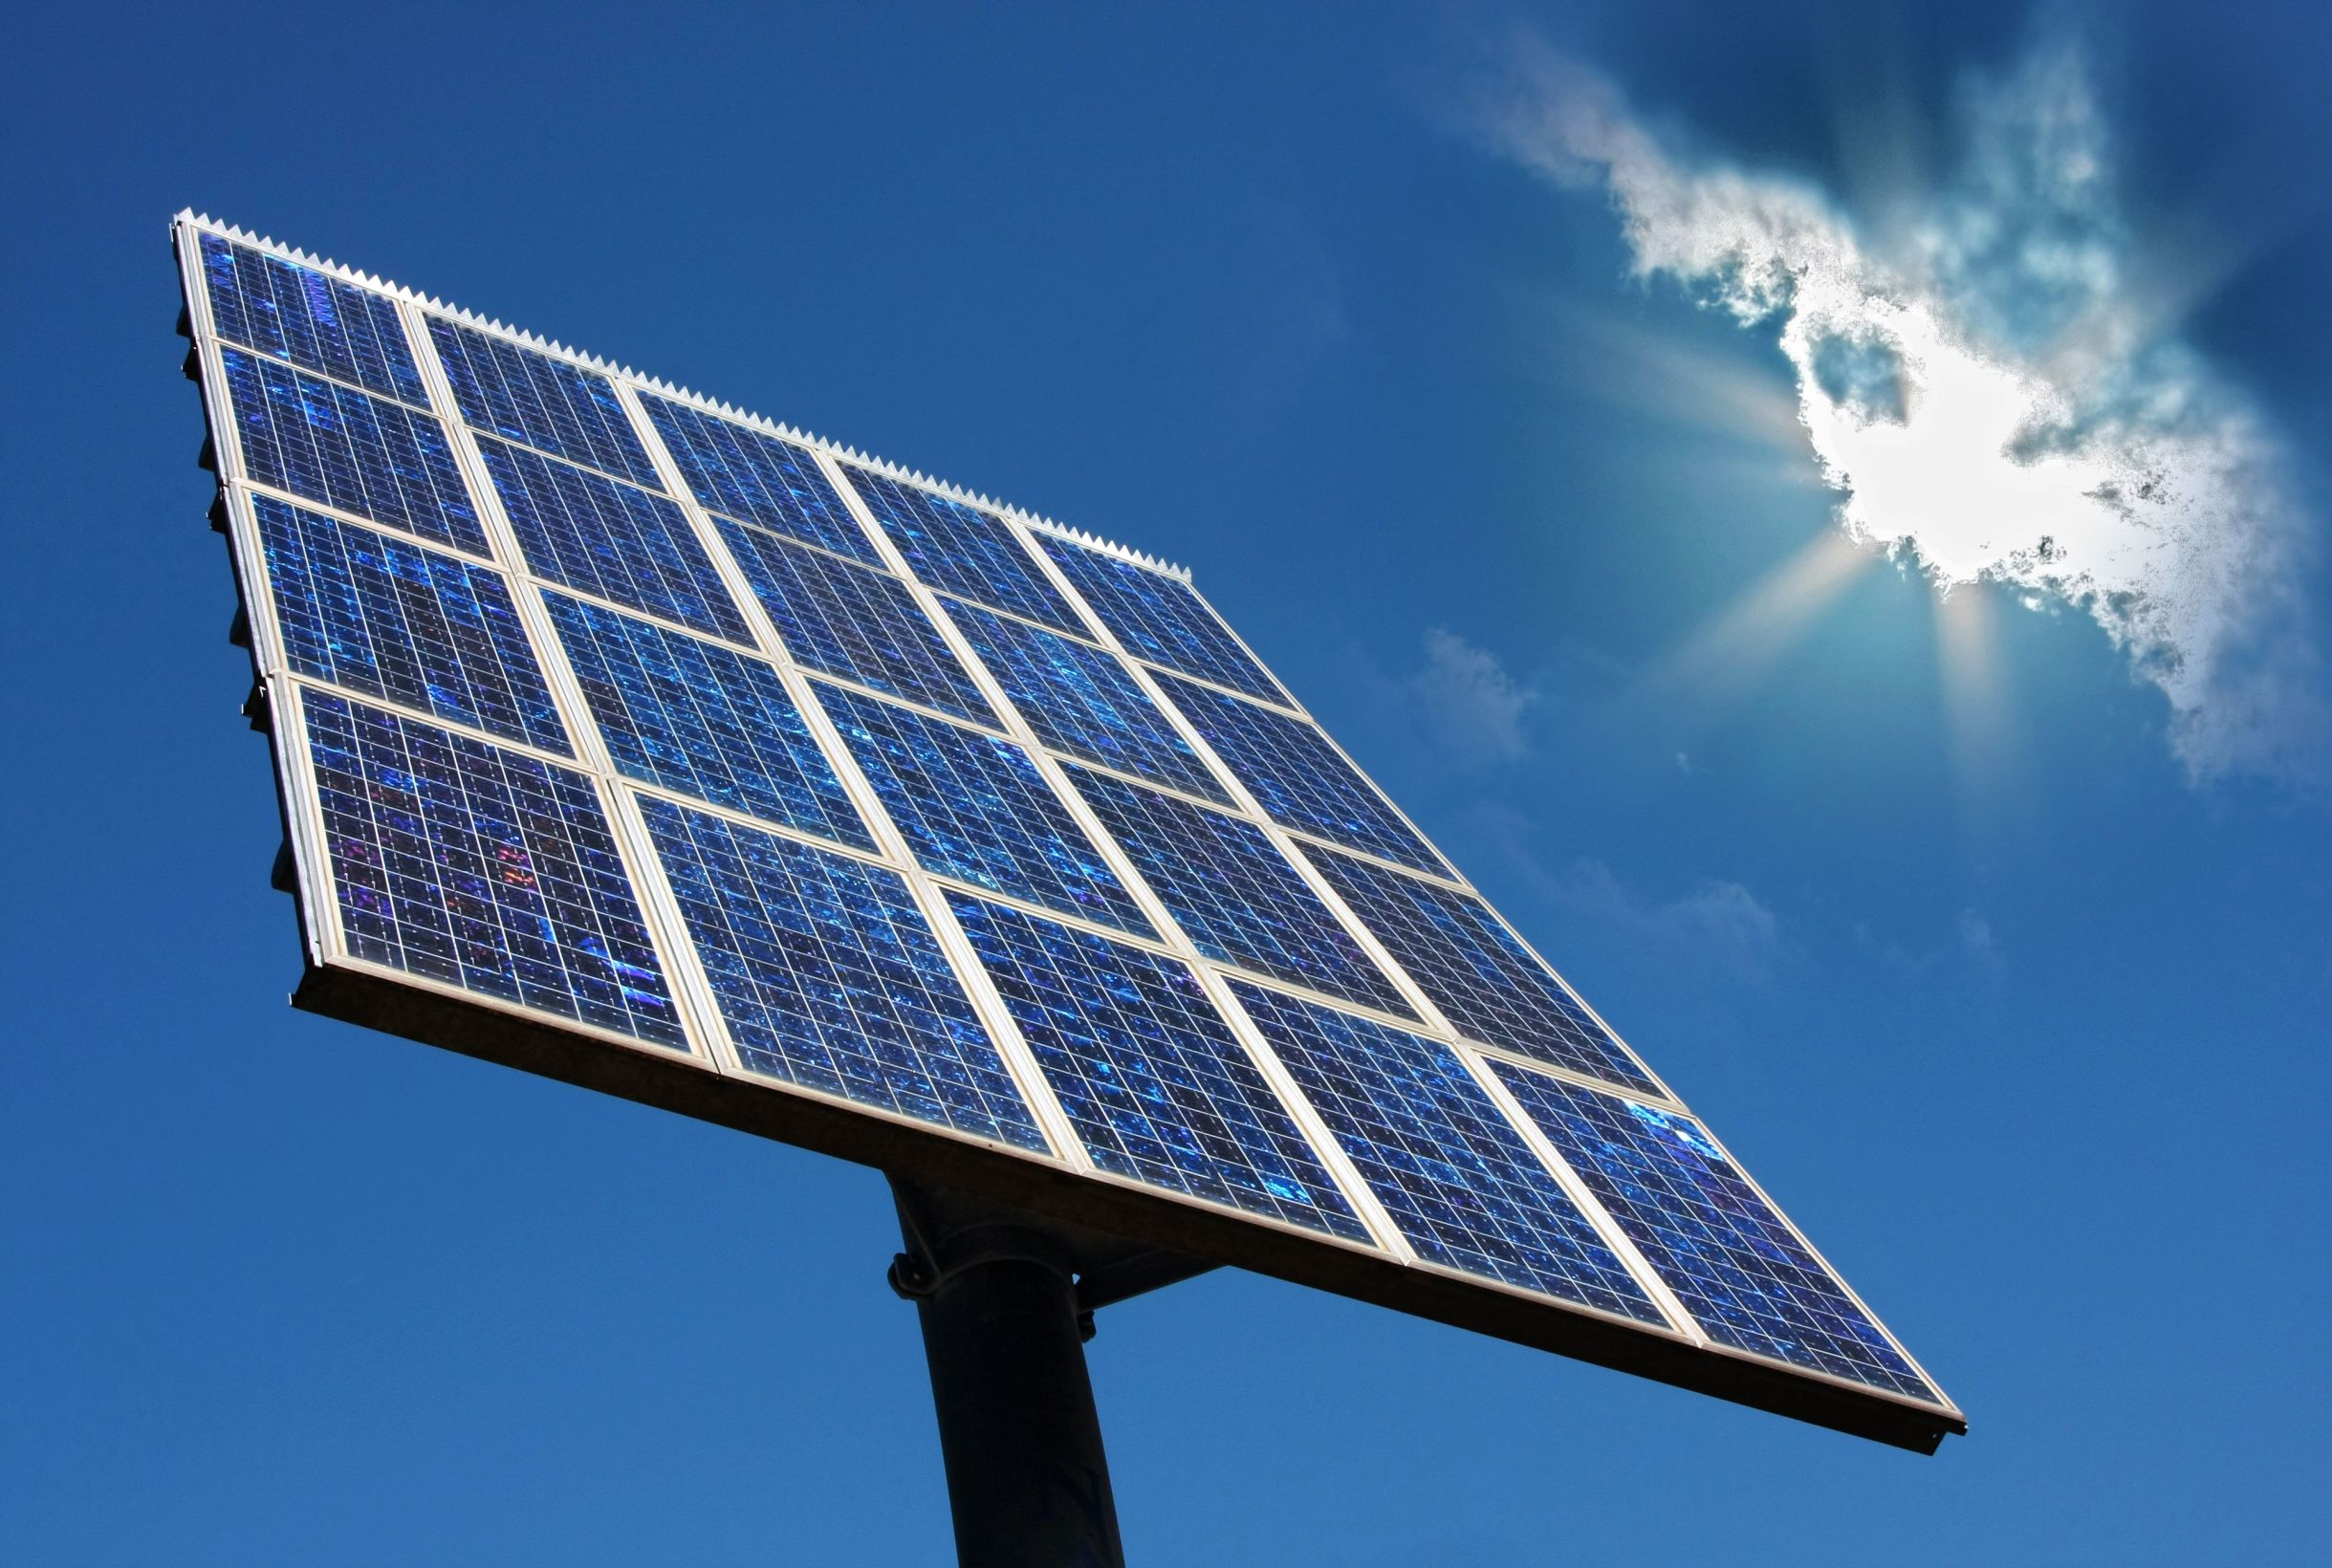 imc to set up solar panels for green energy electronicsb2b